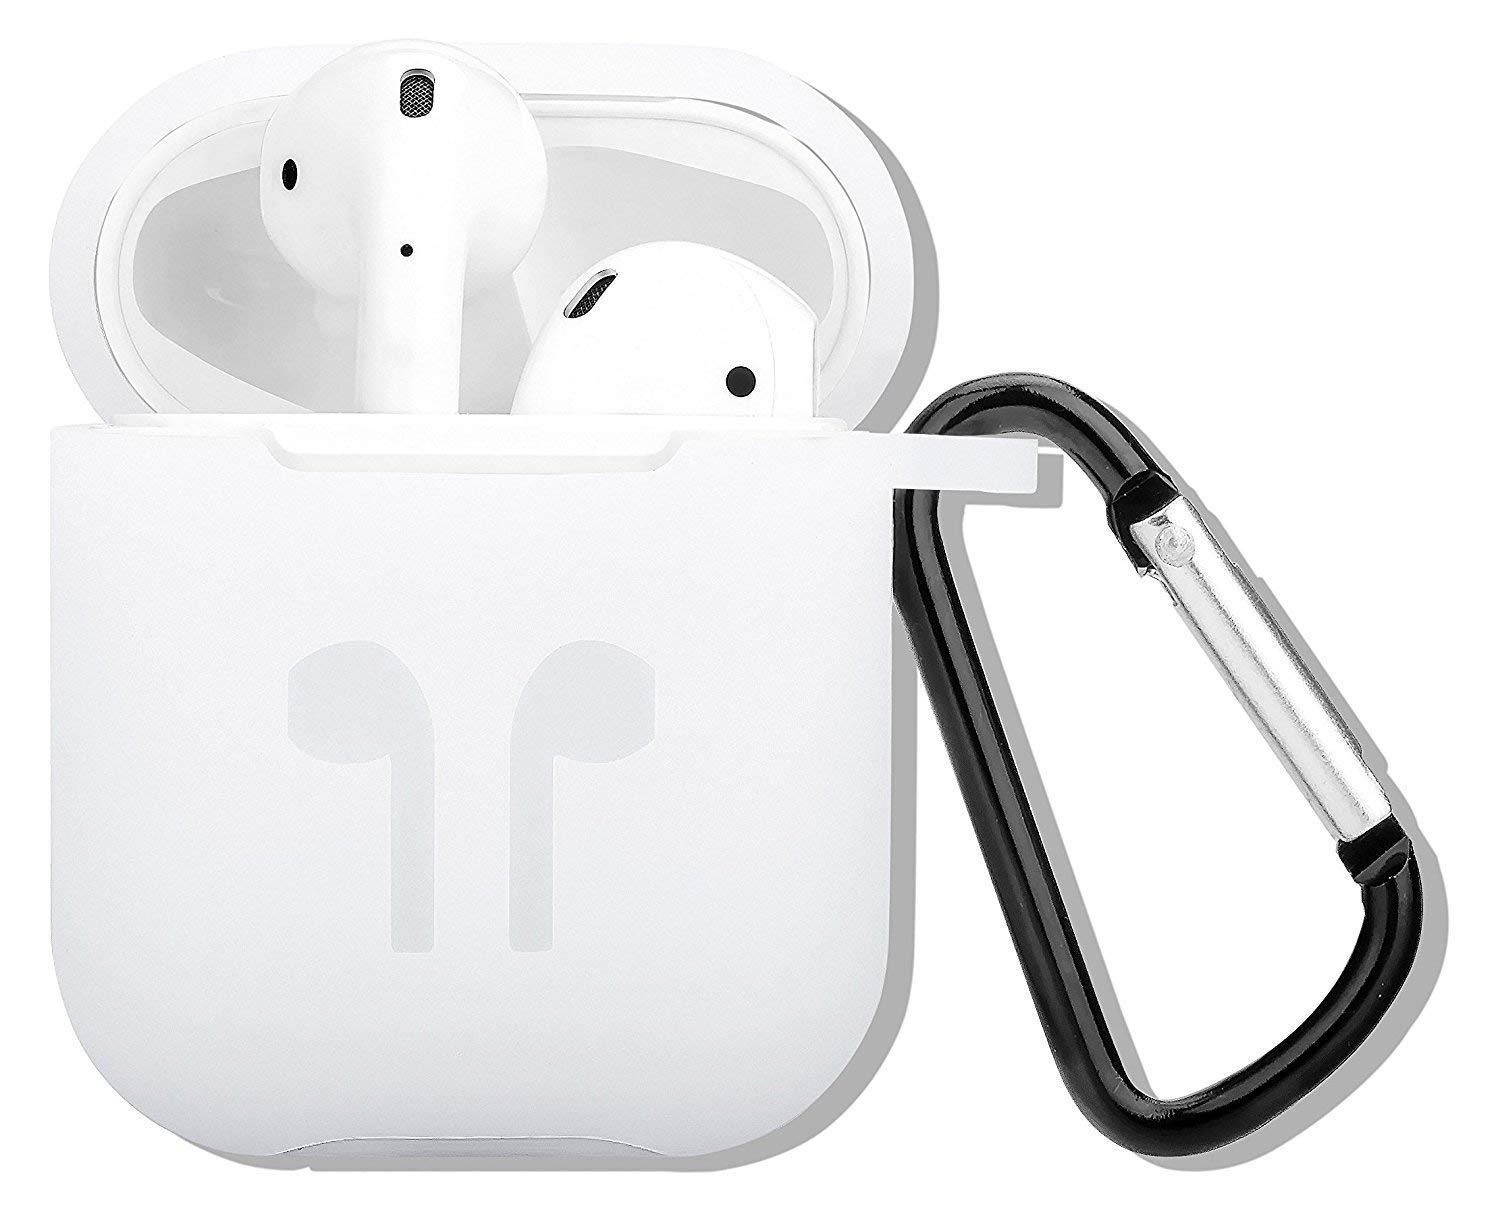 Ponoto-AirPodsケース Ponoto-AirPods Case-white  ホワイト B07NYY6RNS